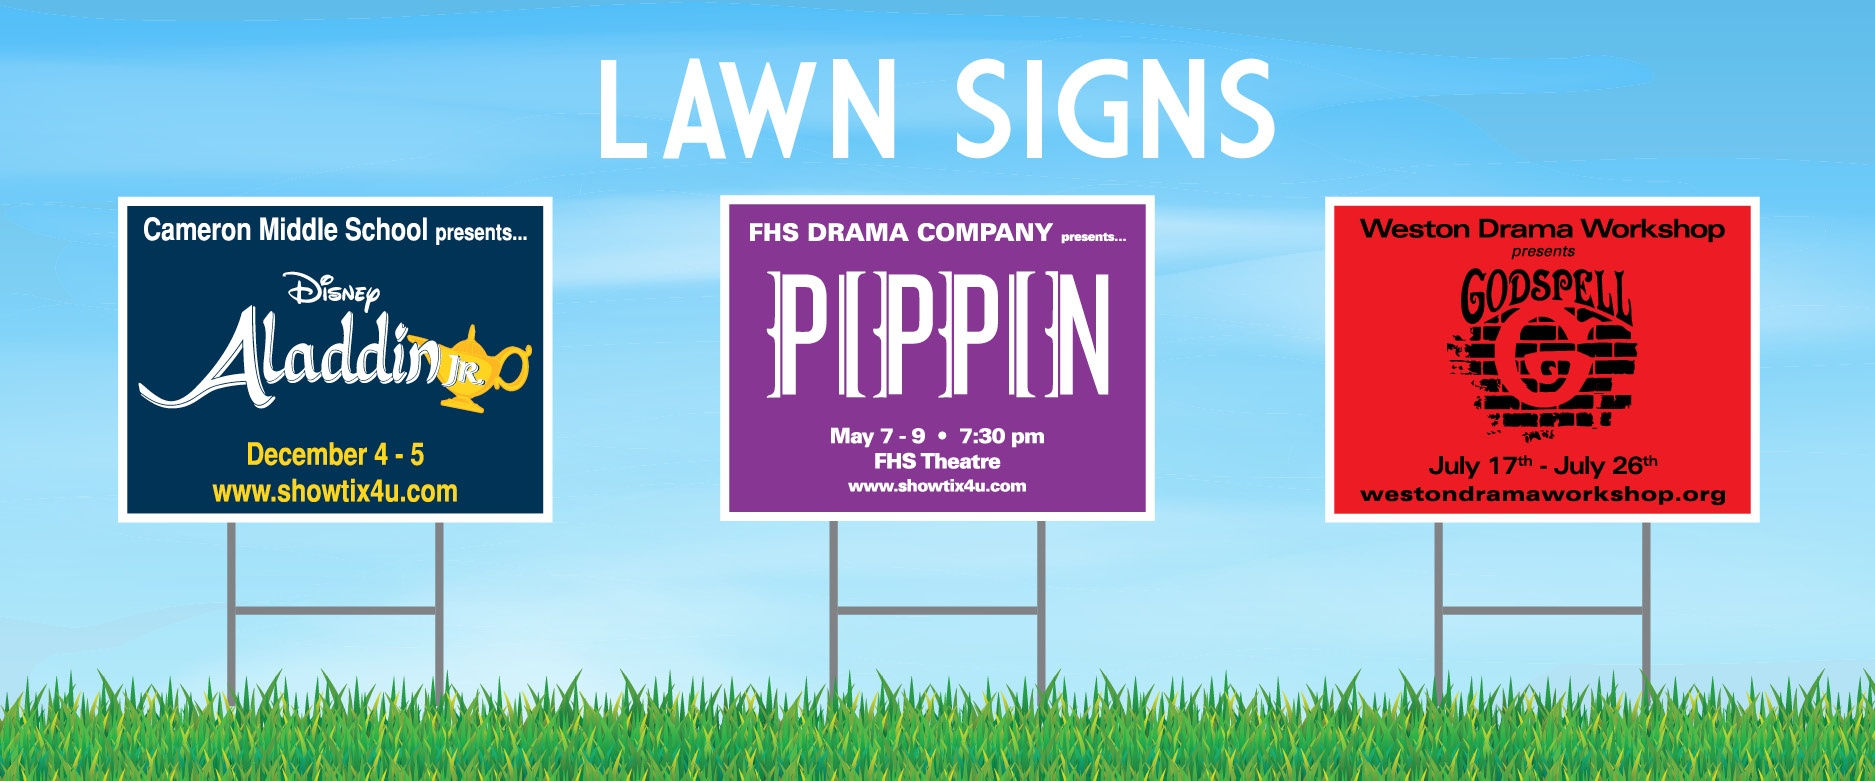 TPI Solutions Ink Theater Lawn Signs